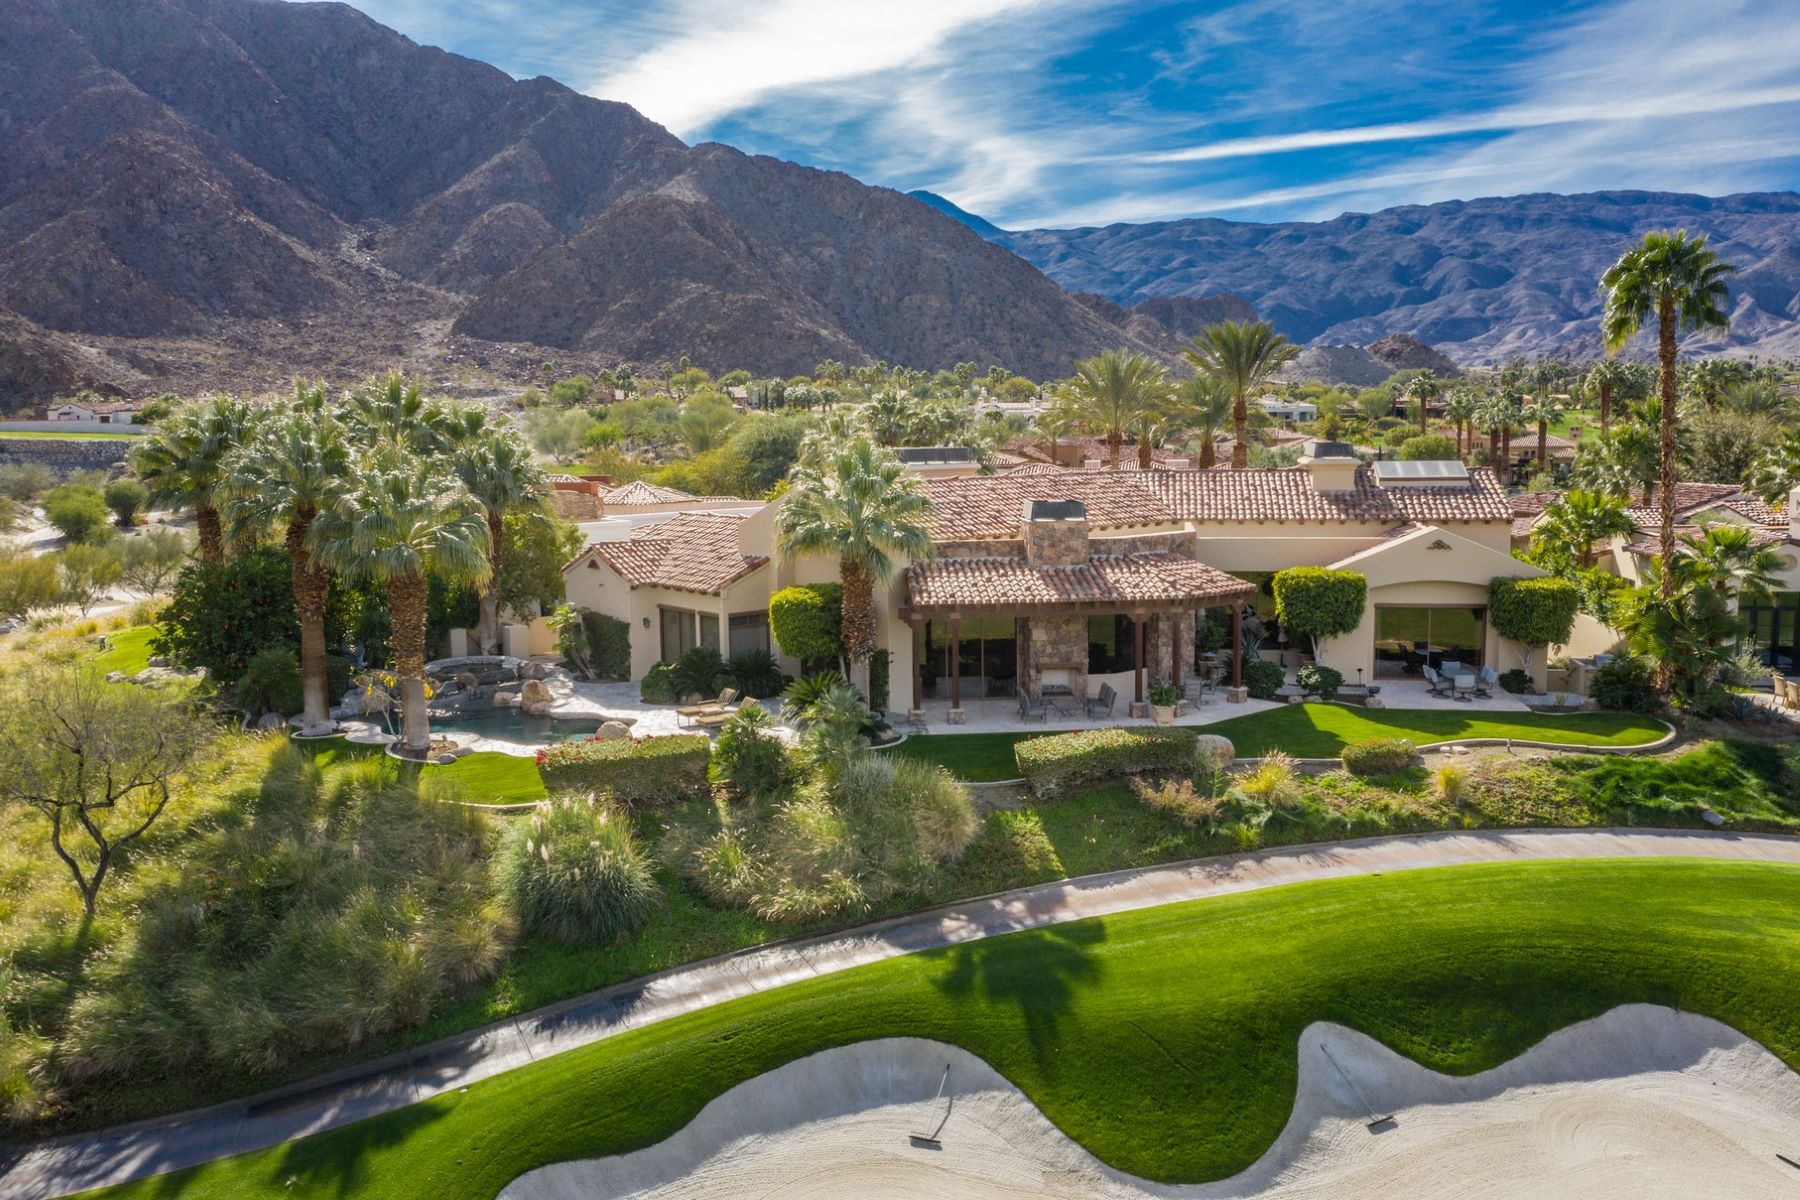 Single Family Homes for Sale at 53265 Troon Trail La Quinta, California 92253 United States